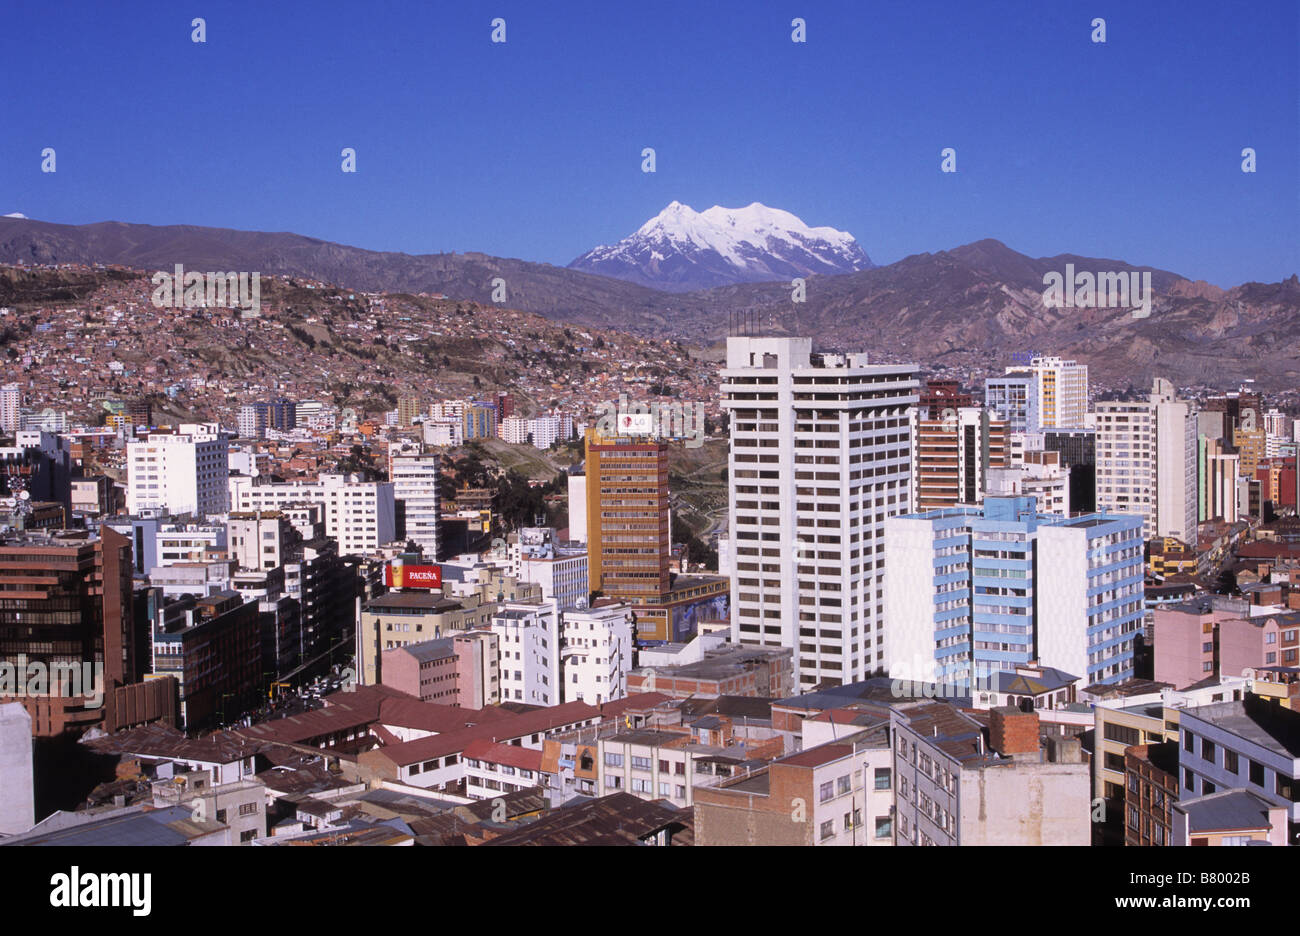 High rise apartment buildings in central La Paz and Mt Illimani, Bolivia - Stock Image